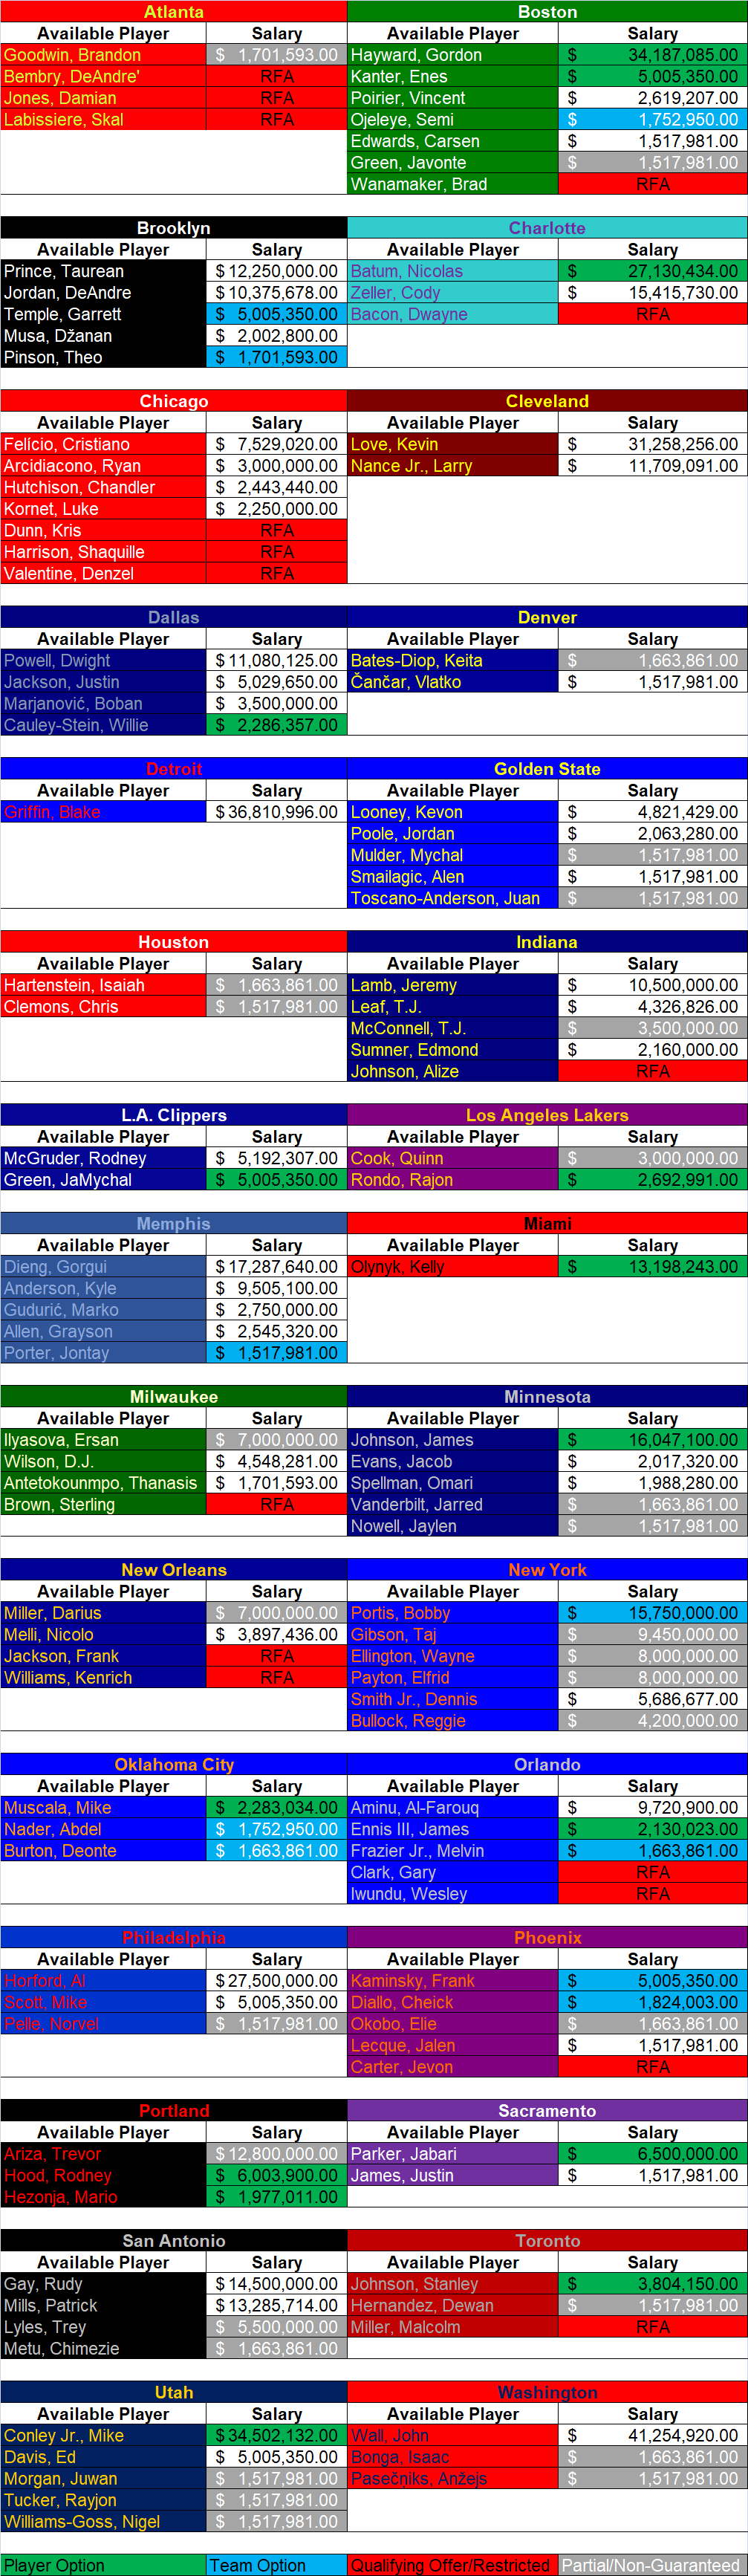 Mock NBA expansion draft